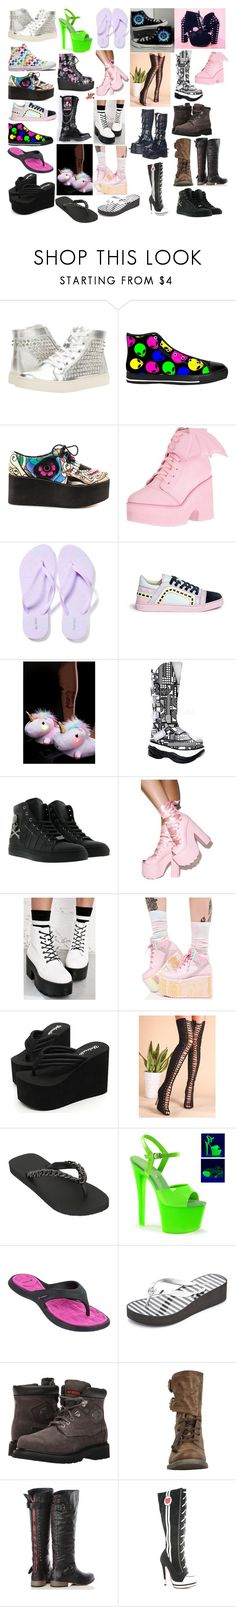 """""""Girl Shoes 40"""" by spellcasters ❤ liked on Polyvore featuring Steve Madden, Iron Fist, Old Navy, Sophia Webster, Smoko, Converse, Demonia, Y.R.U., WithChic and Uzurii"""